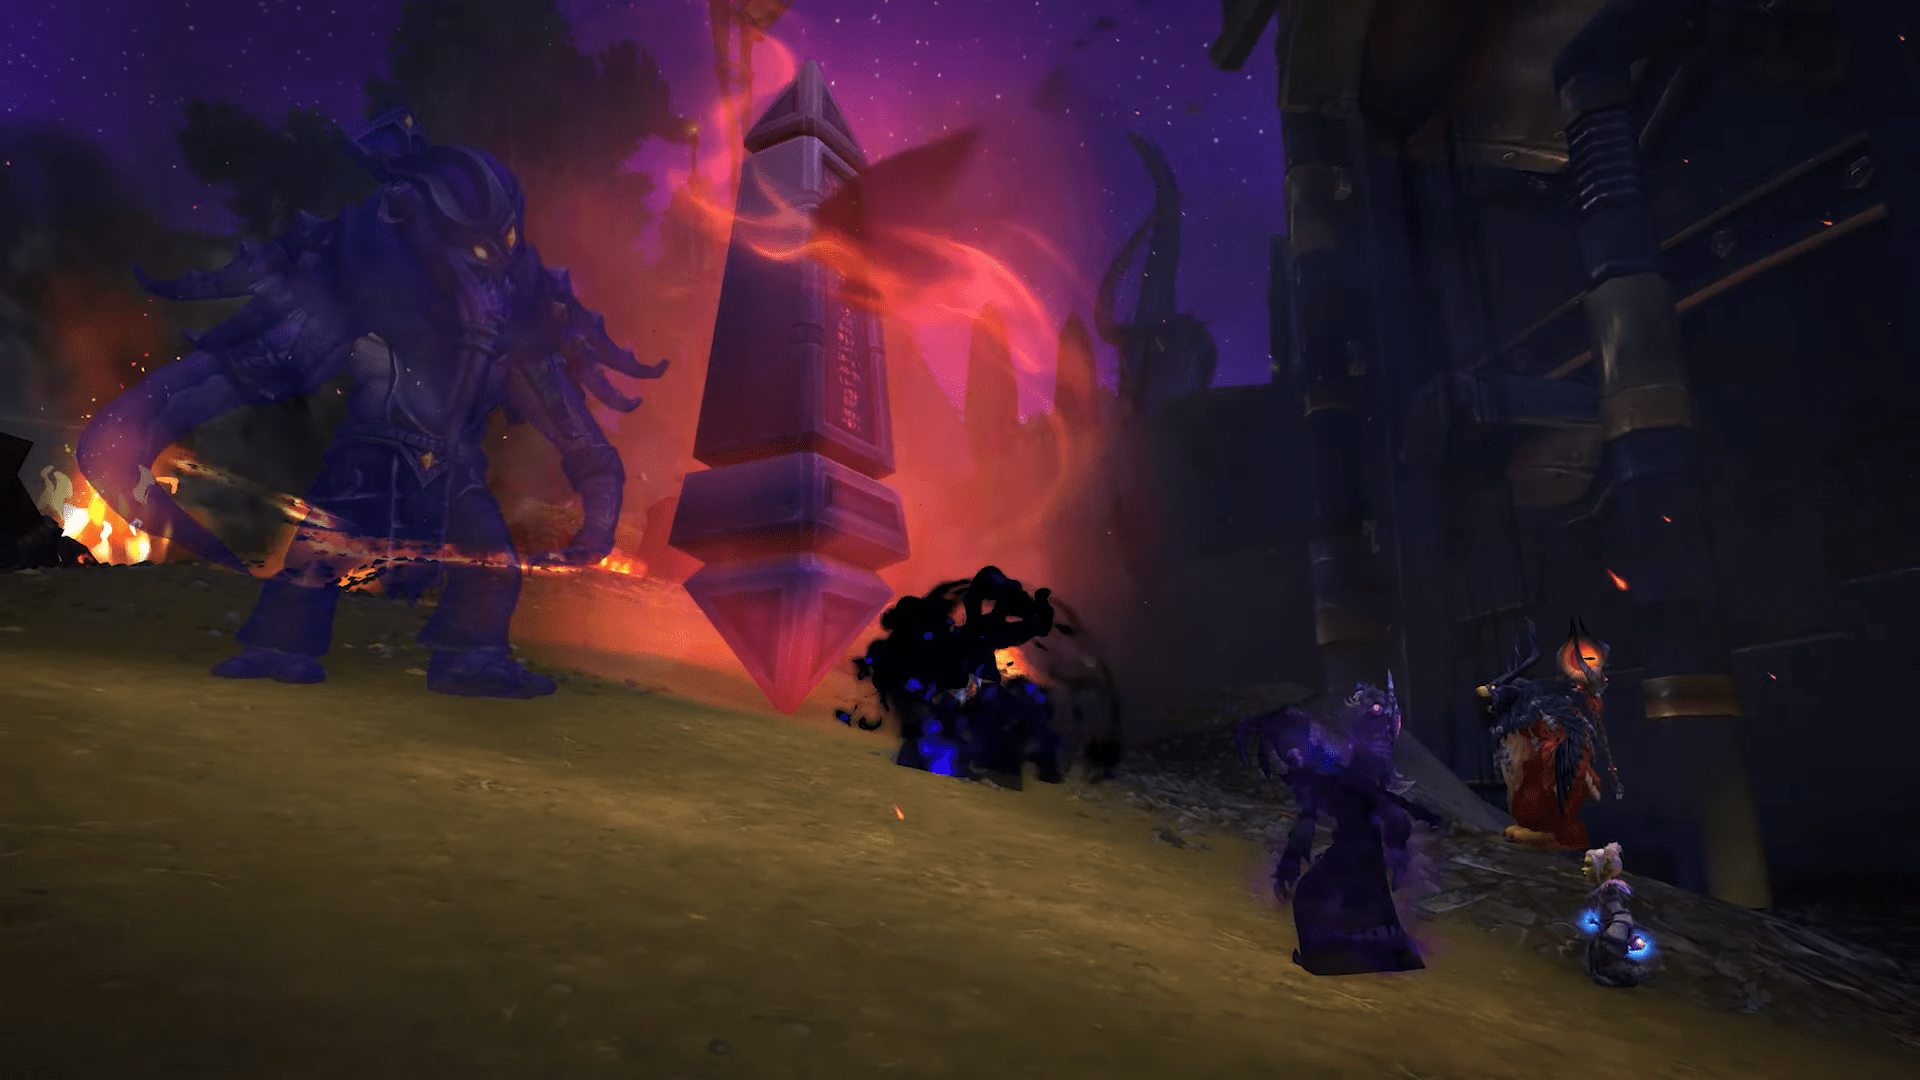 World Of Warcraft: Battle For Azeroth Season 4 Starts January 21 With New Mythic Dungeon Affix